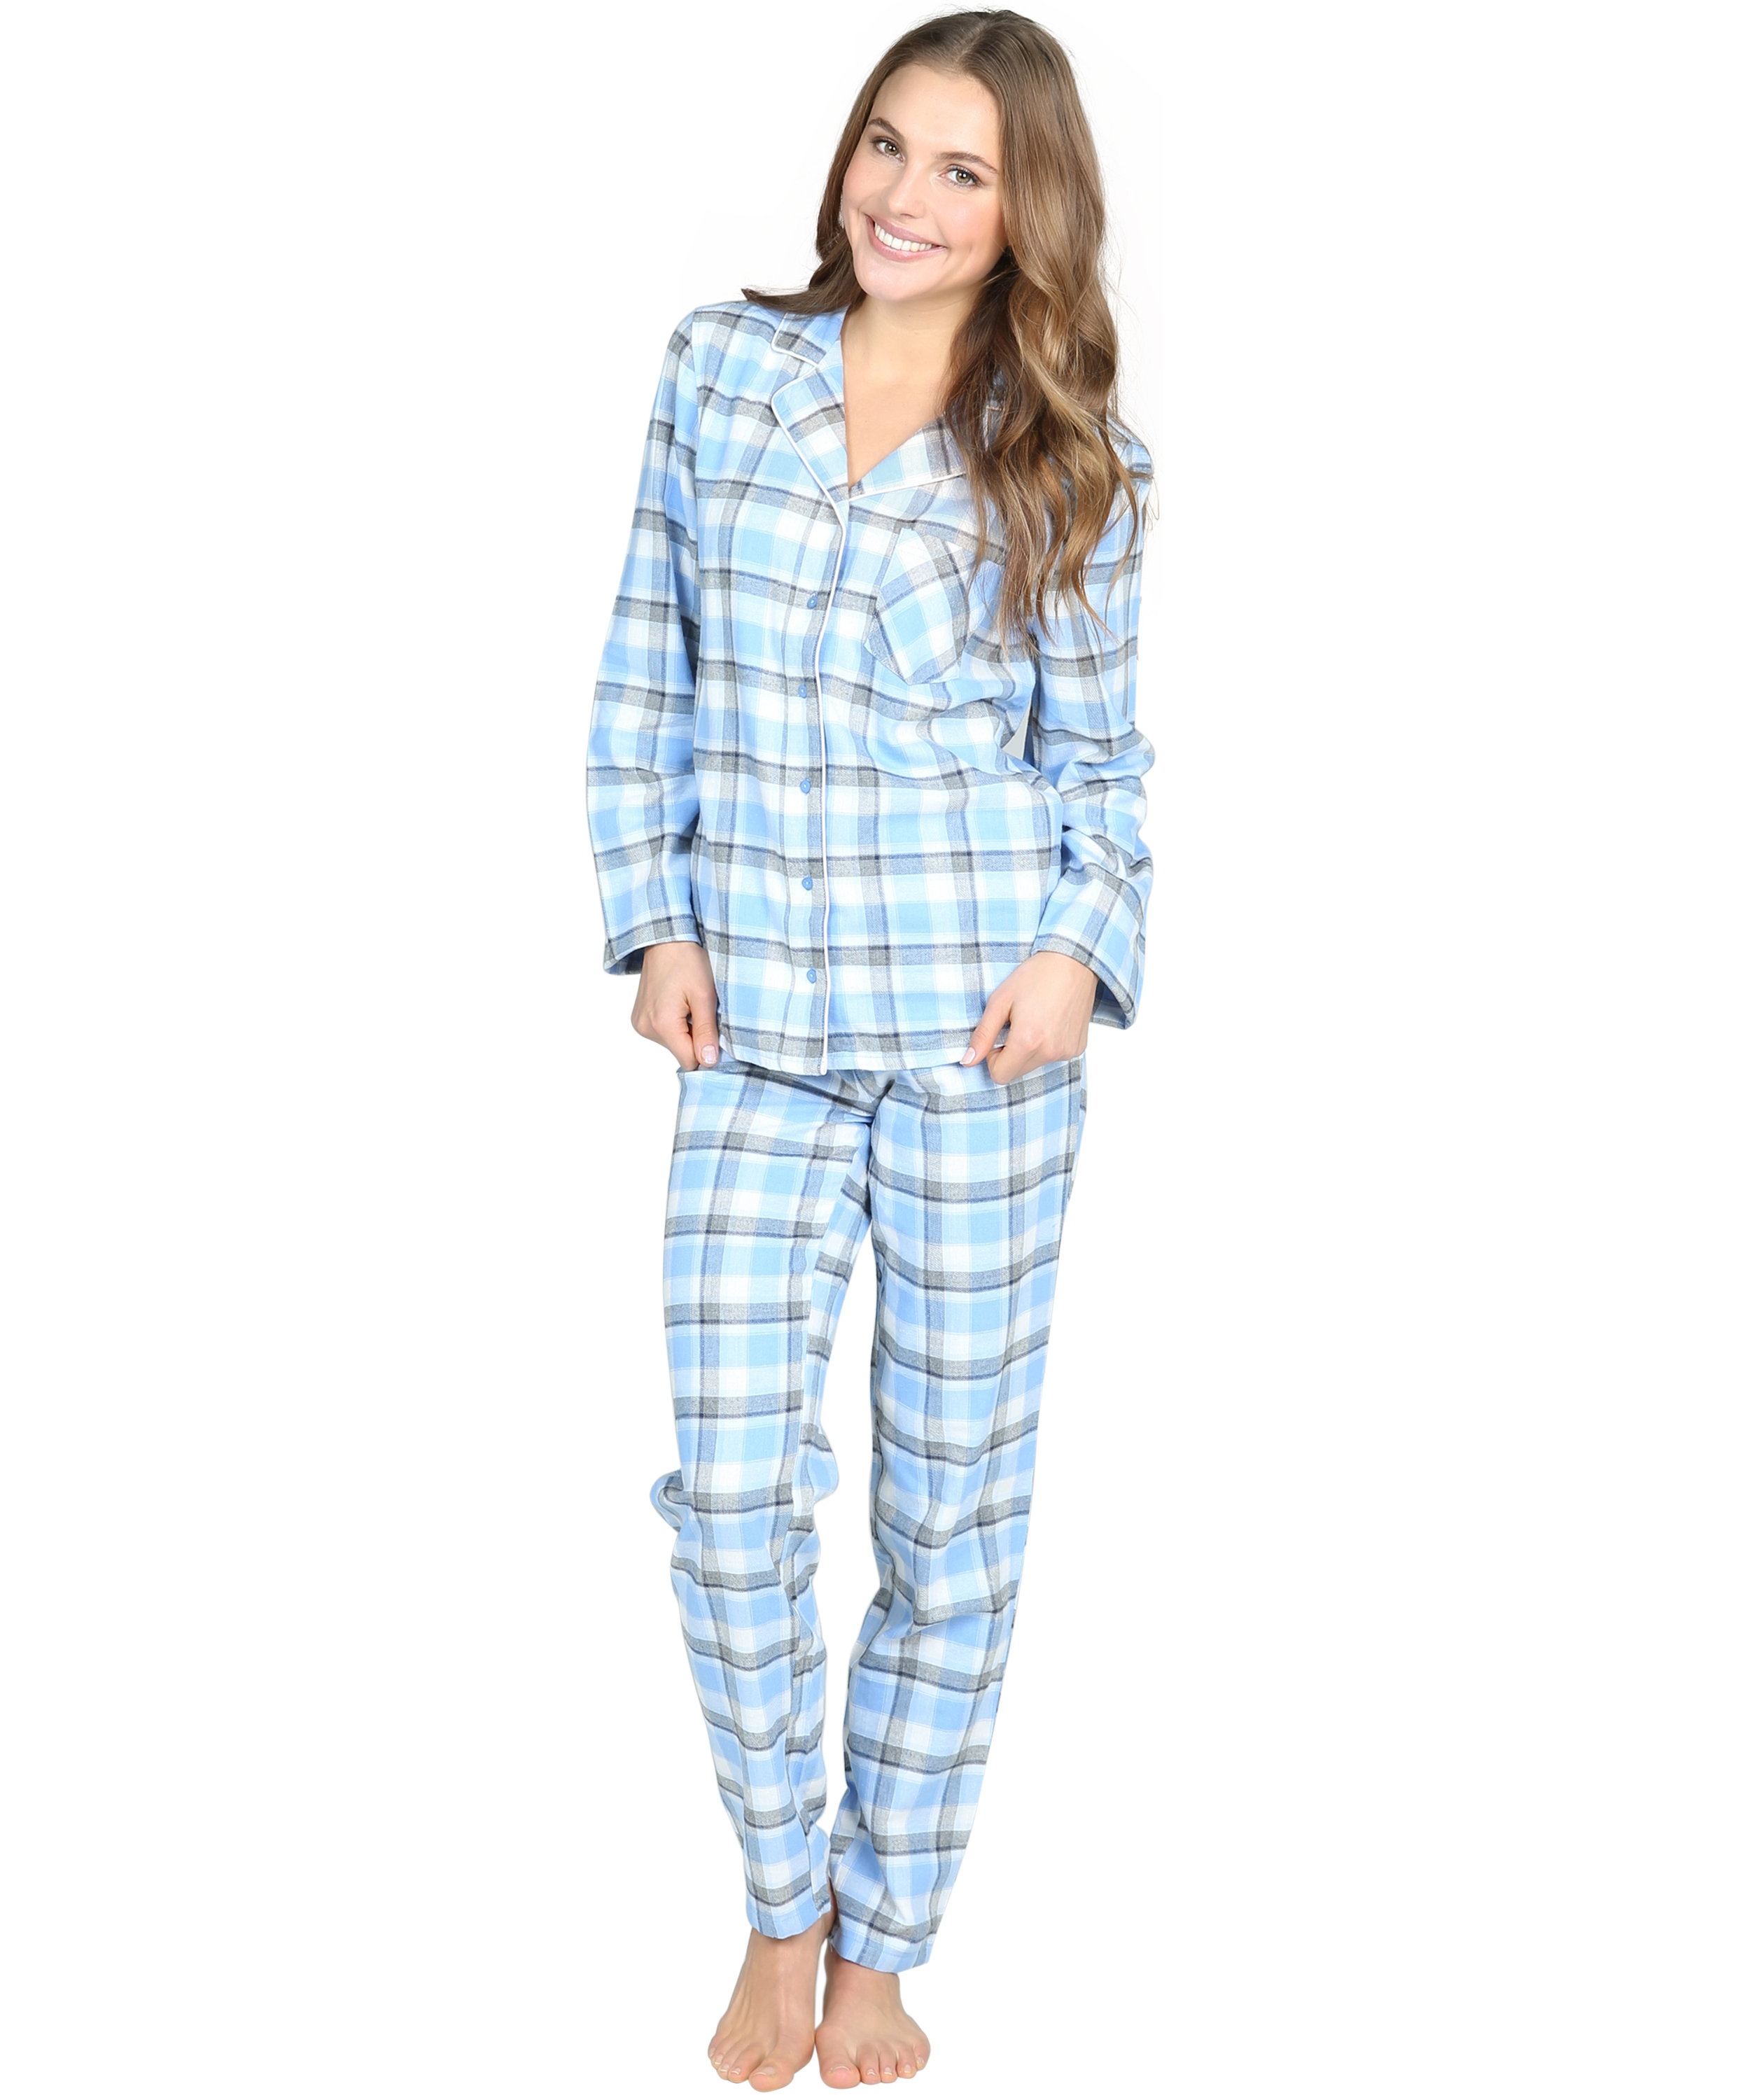 Pyjama set Pappilon, Blauw, main